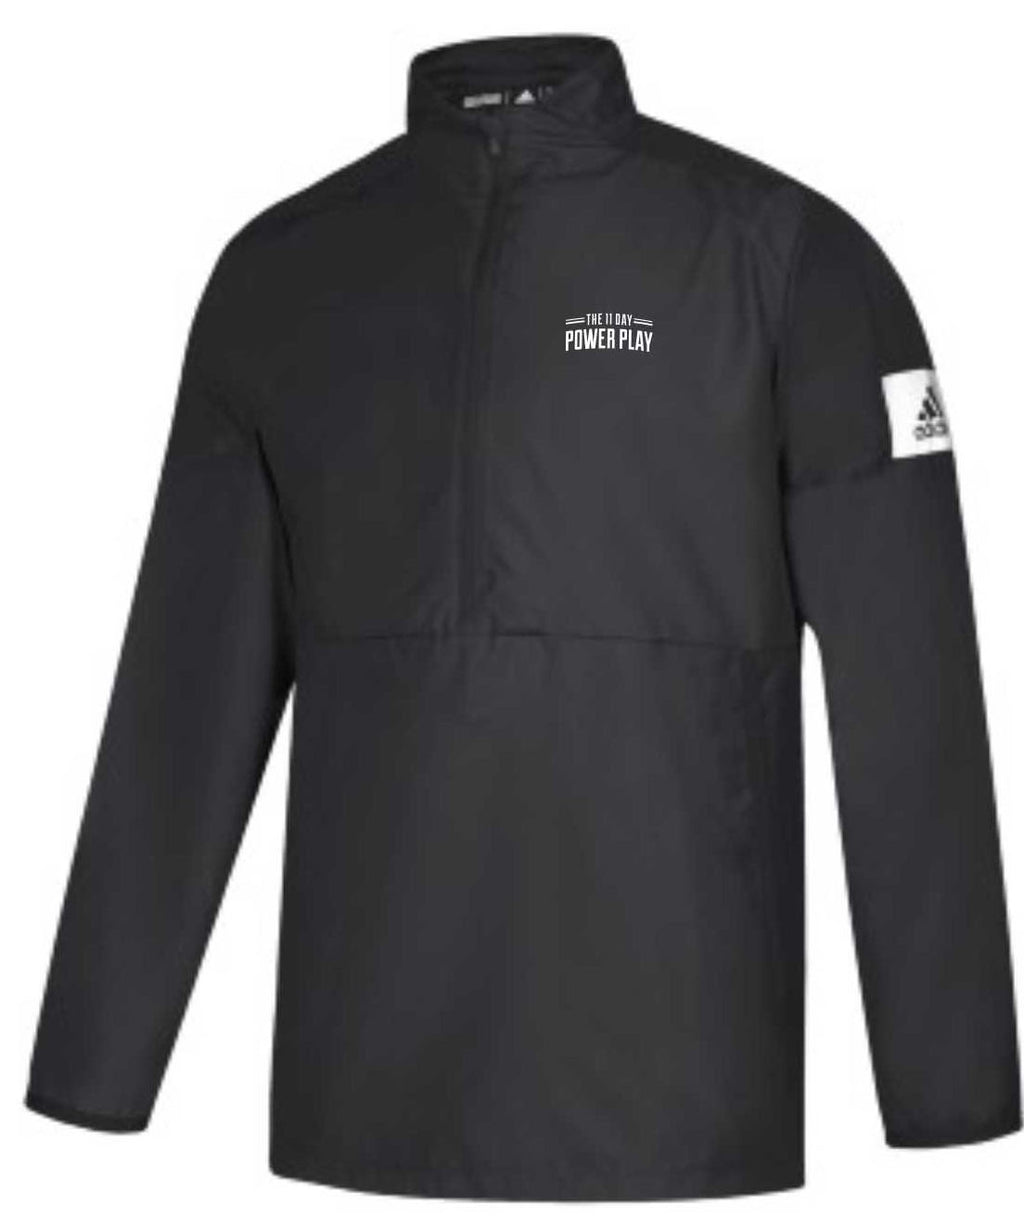 Adidas Game Mode LS 1/4 Zip Jacket